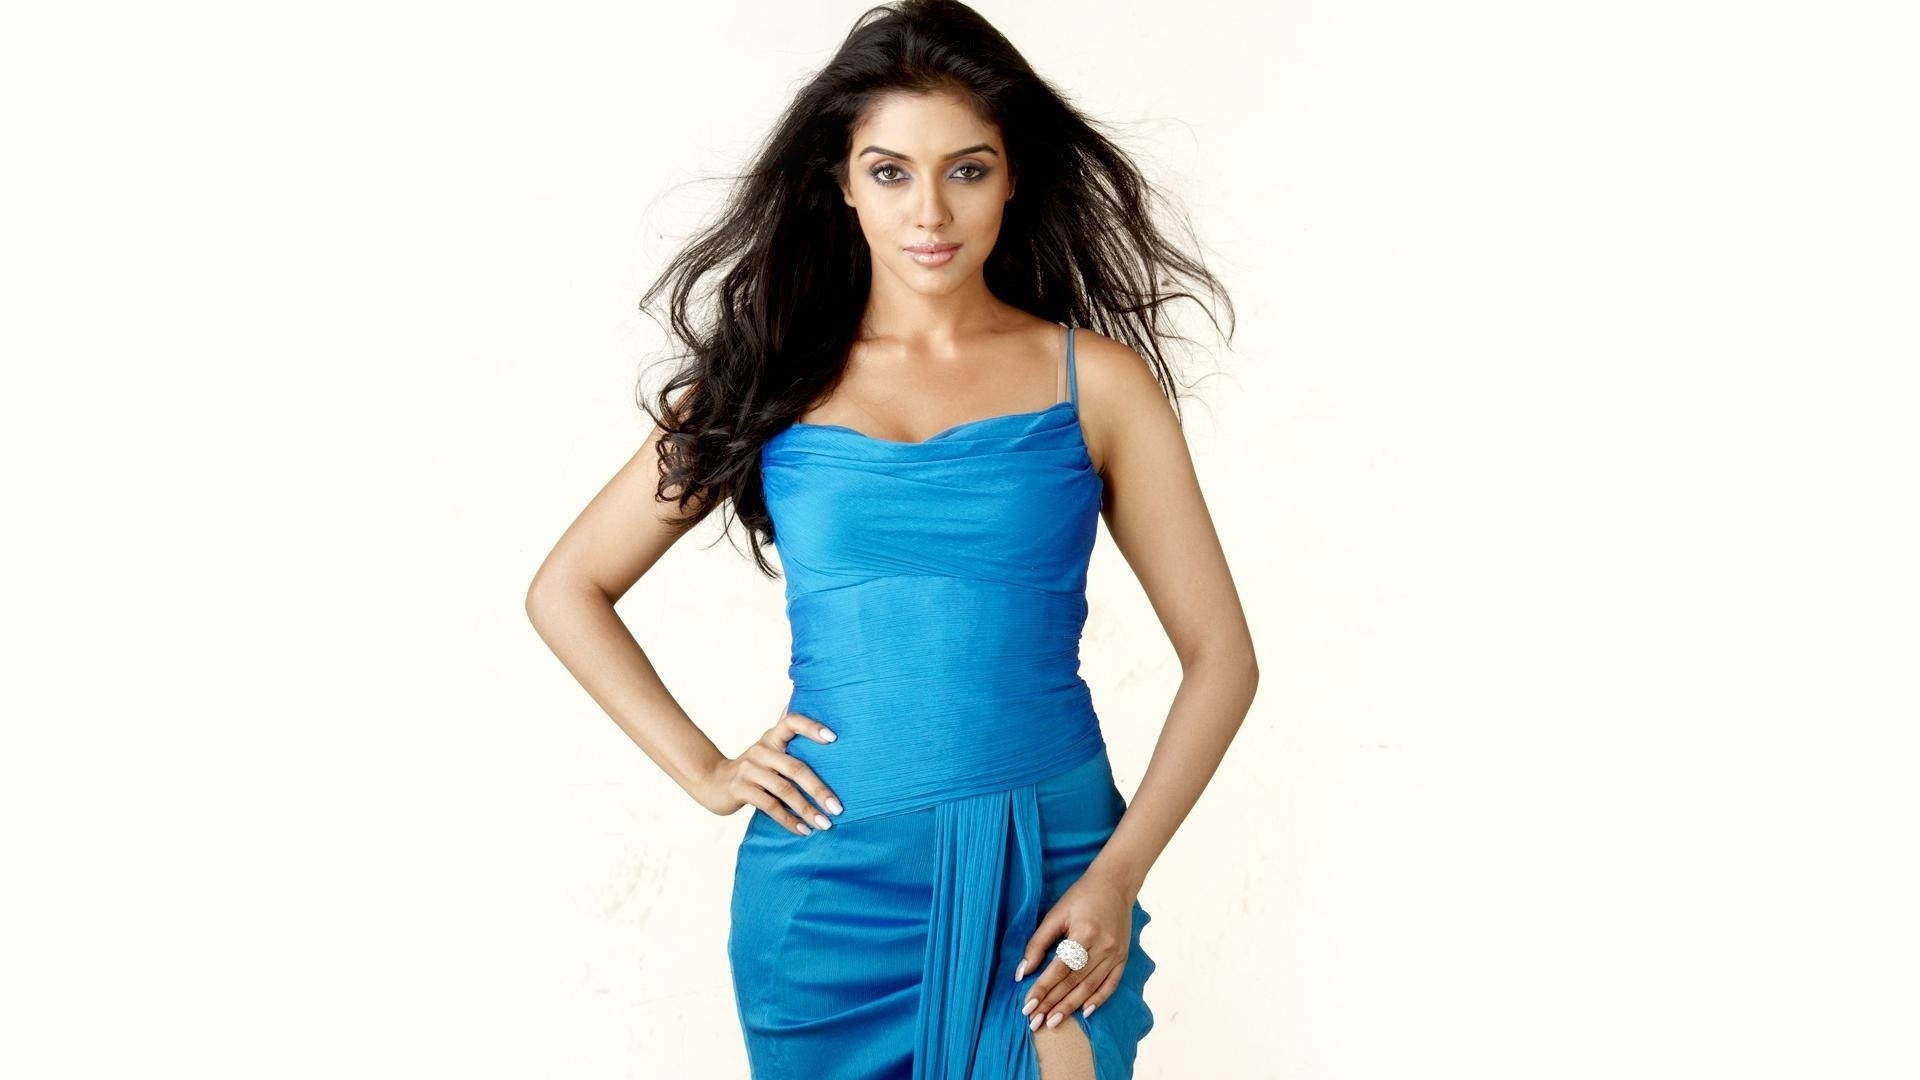 asin wallpapers,download free hd desktop wallpapers